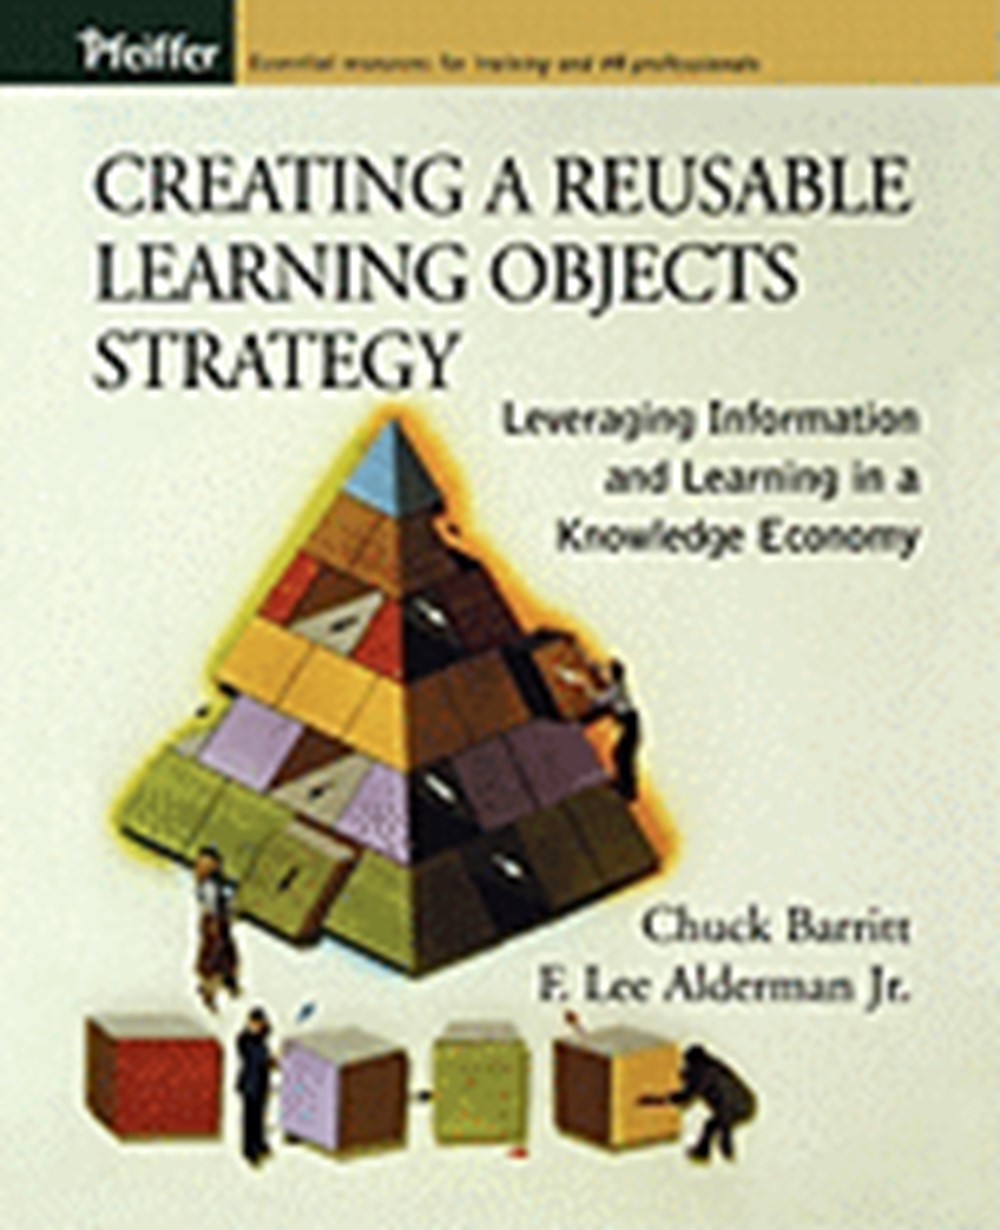 Creating a Reusable Learning Objects Strategy Leveraging Information and Learning in a Knowledge Eco